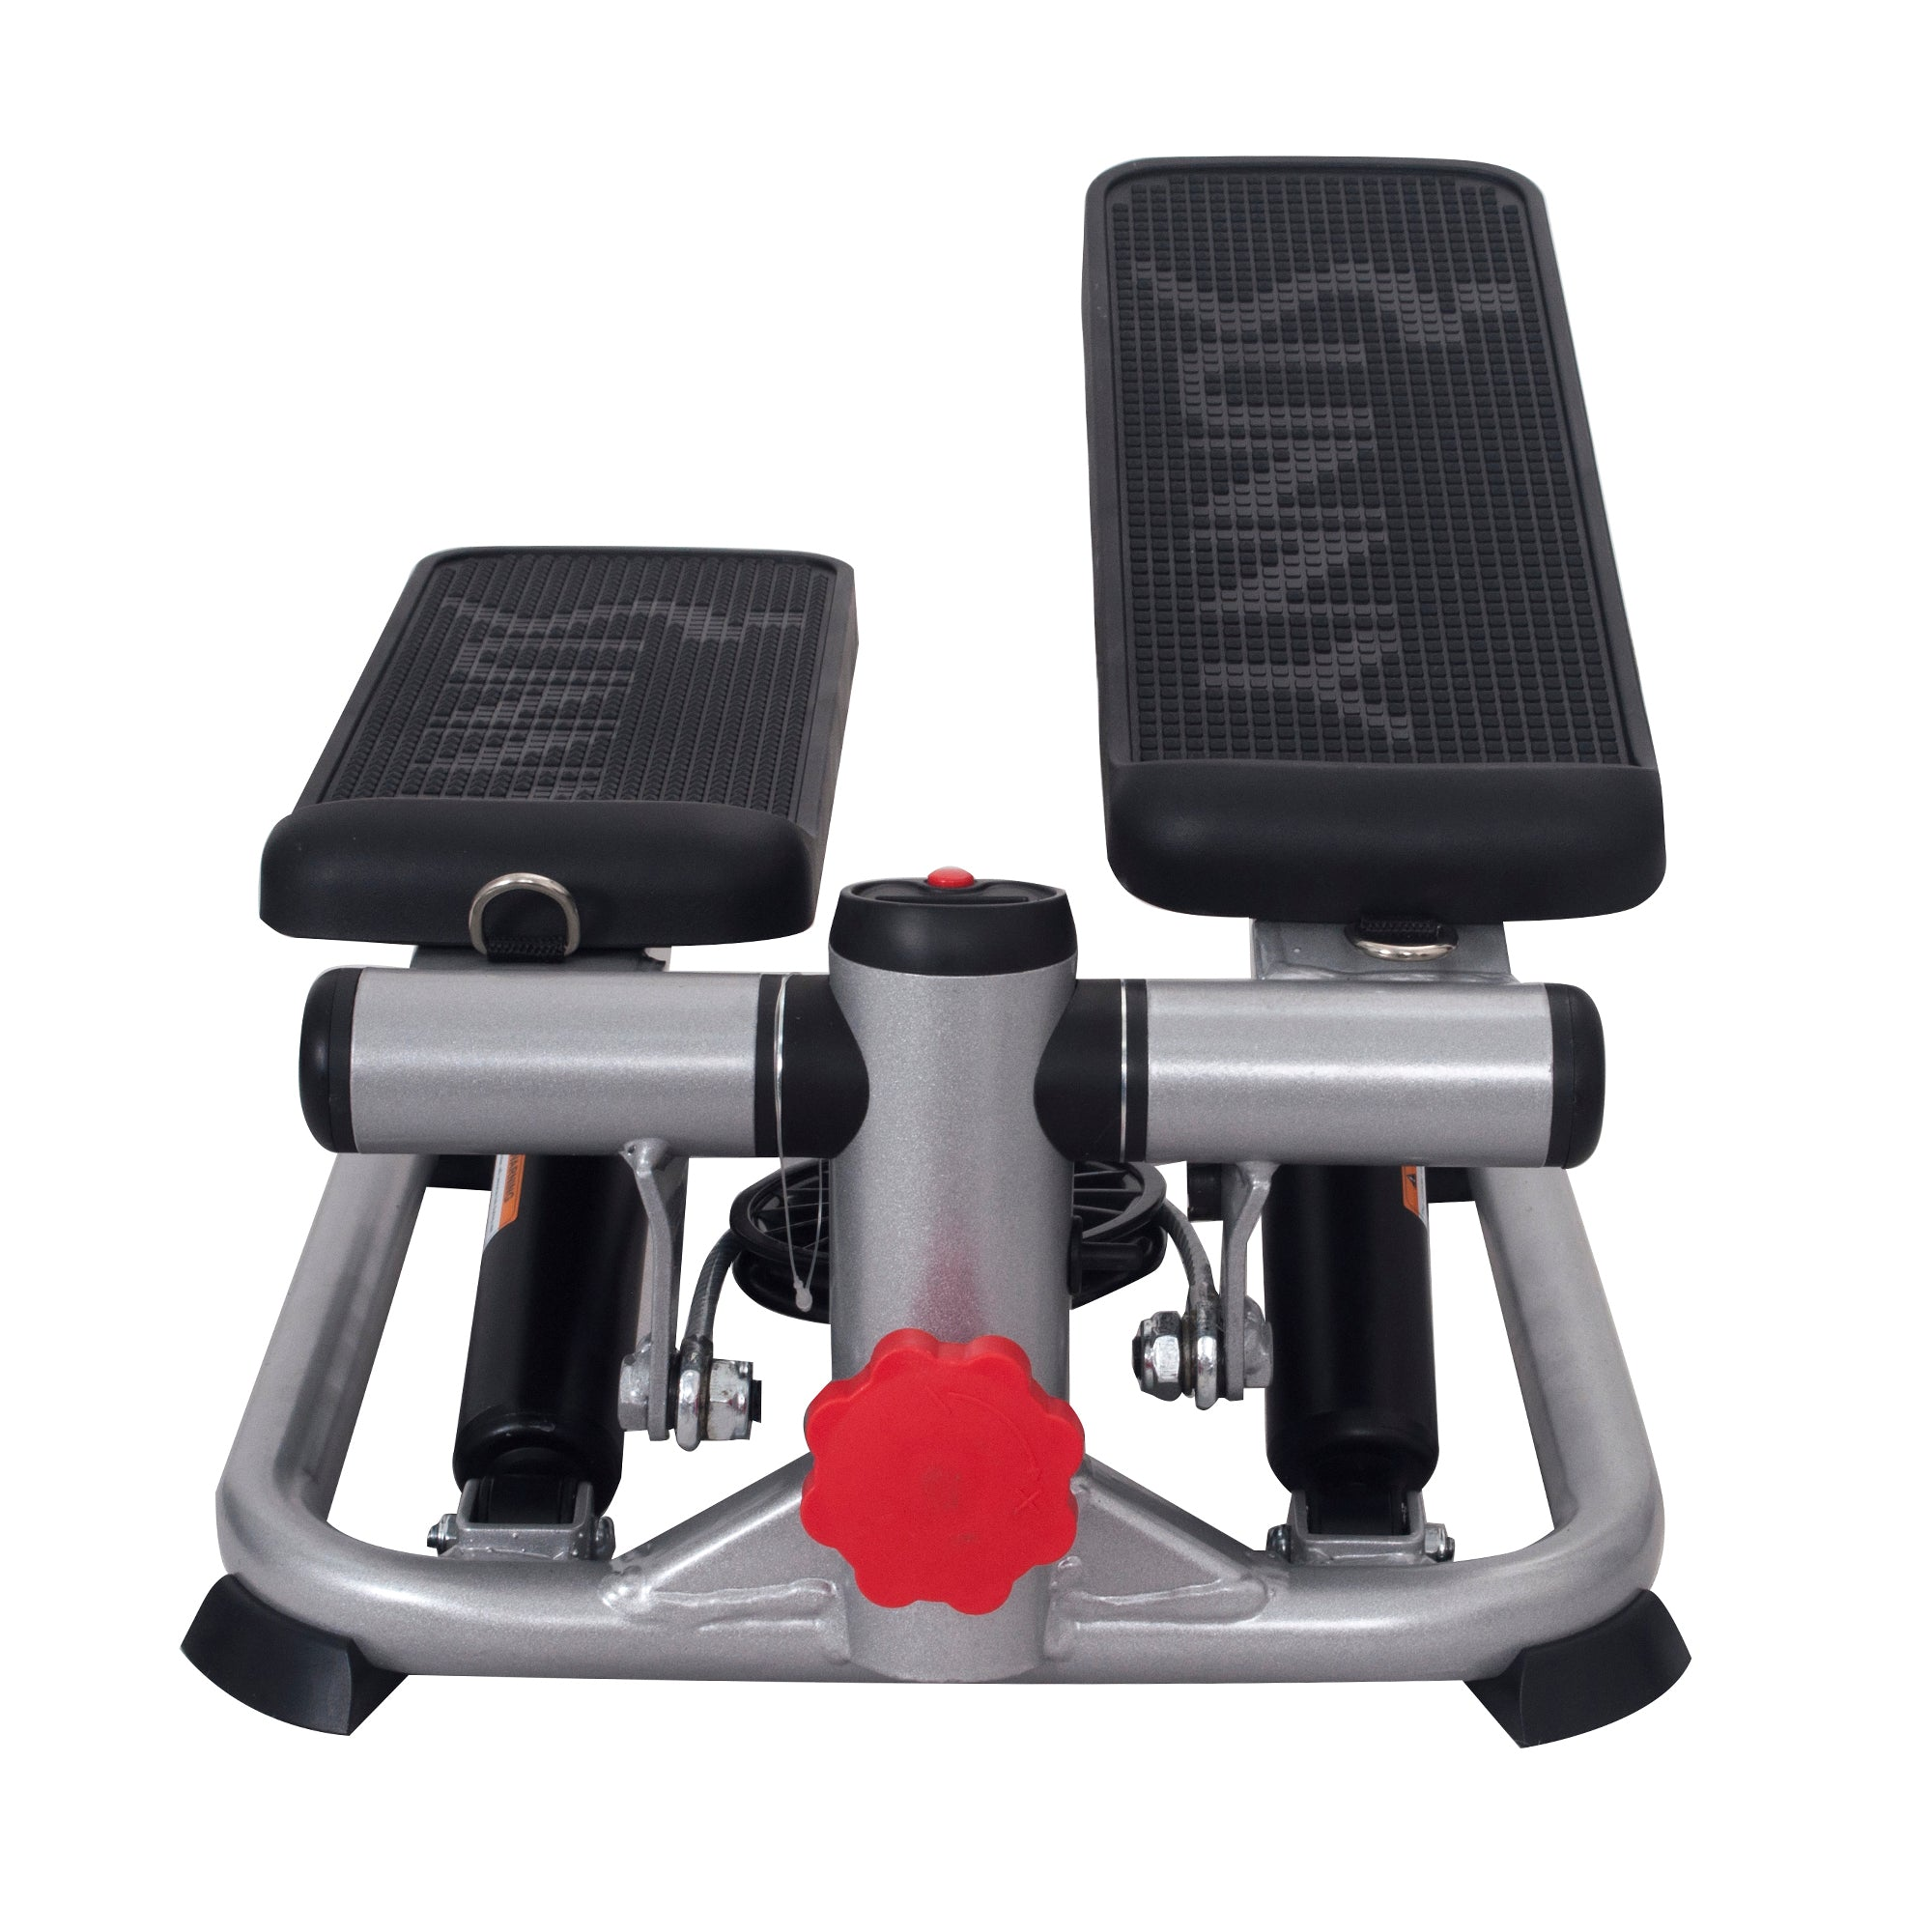 sunny-health-fitness-stepper-total-body-stepper-machine-SF-S0978-adjustable-height